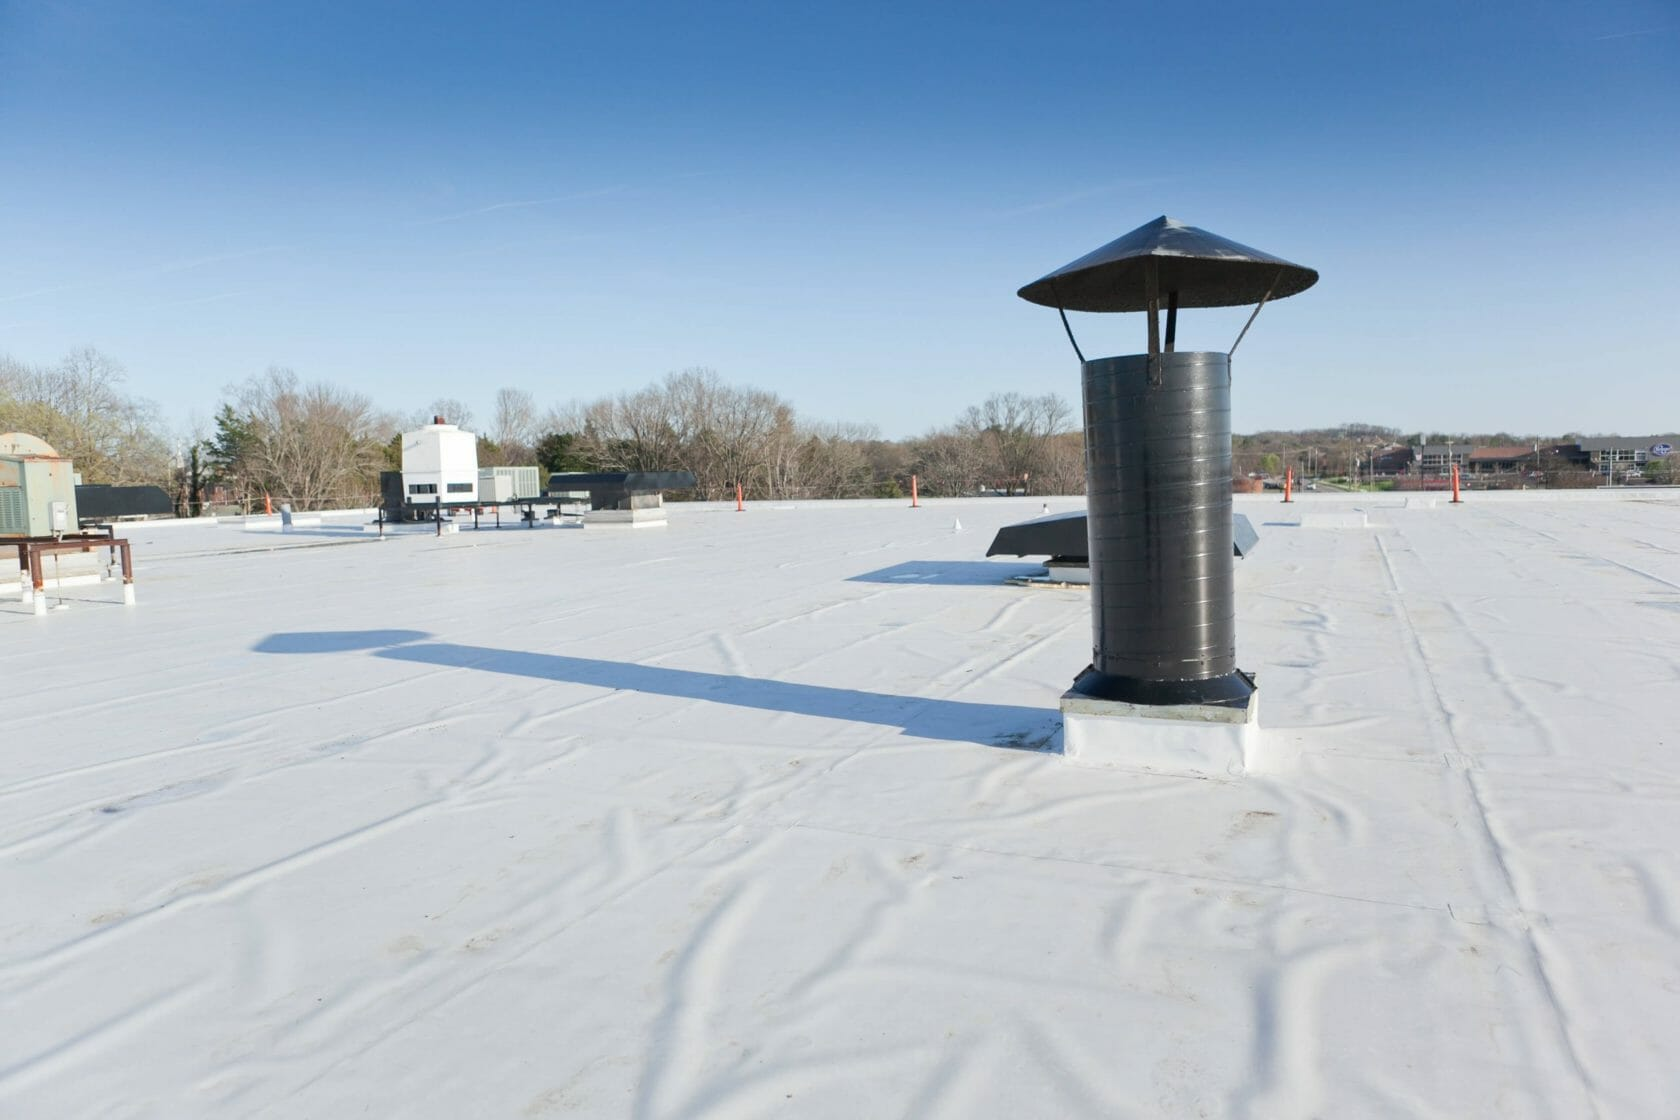 white reflective commerical roof